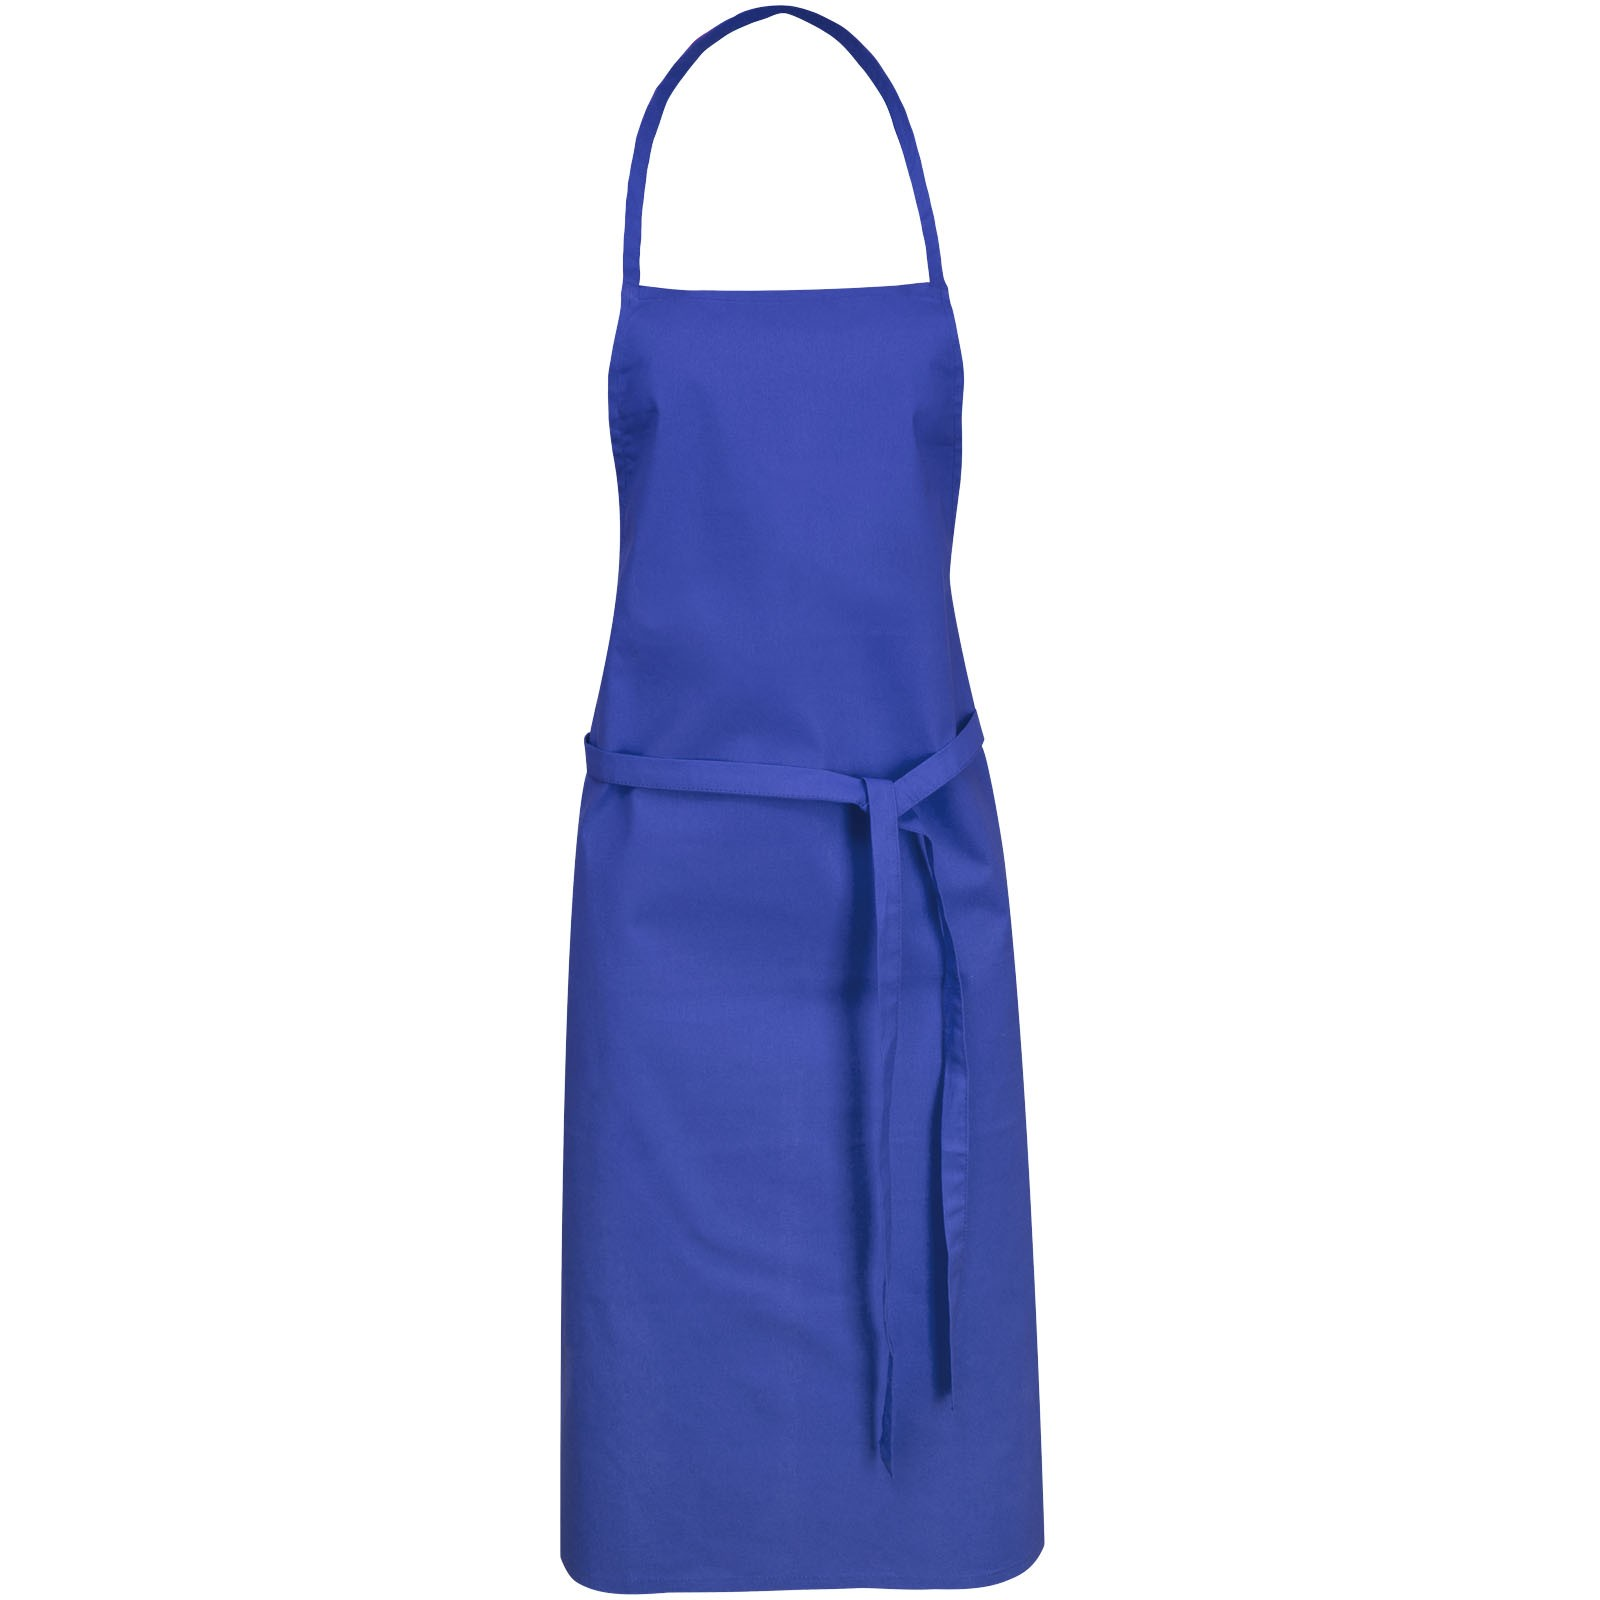 Reeva 100% cotton apron with tie-back closure - Royal blue